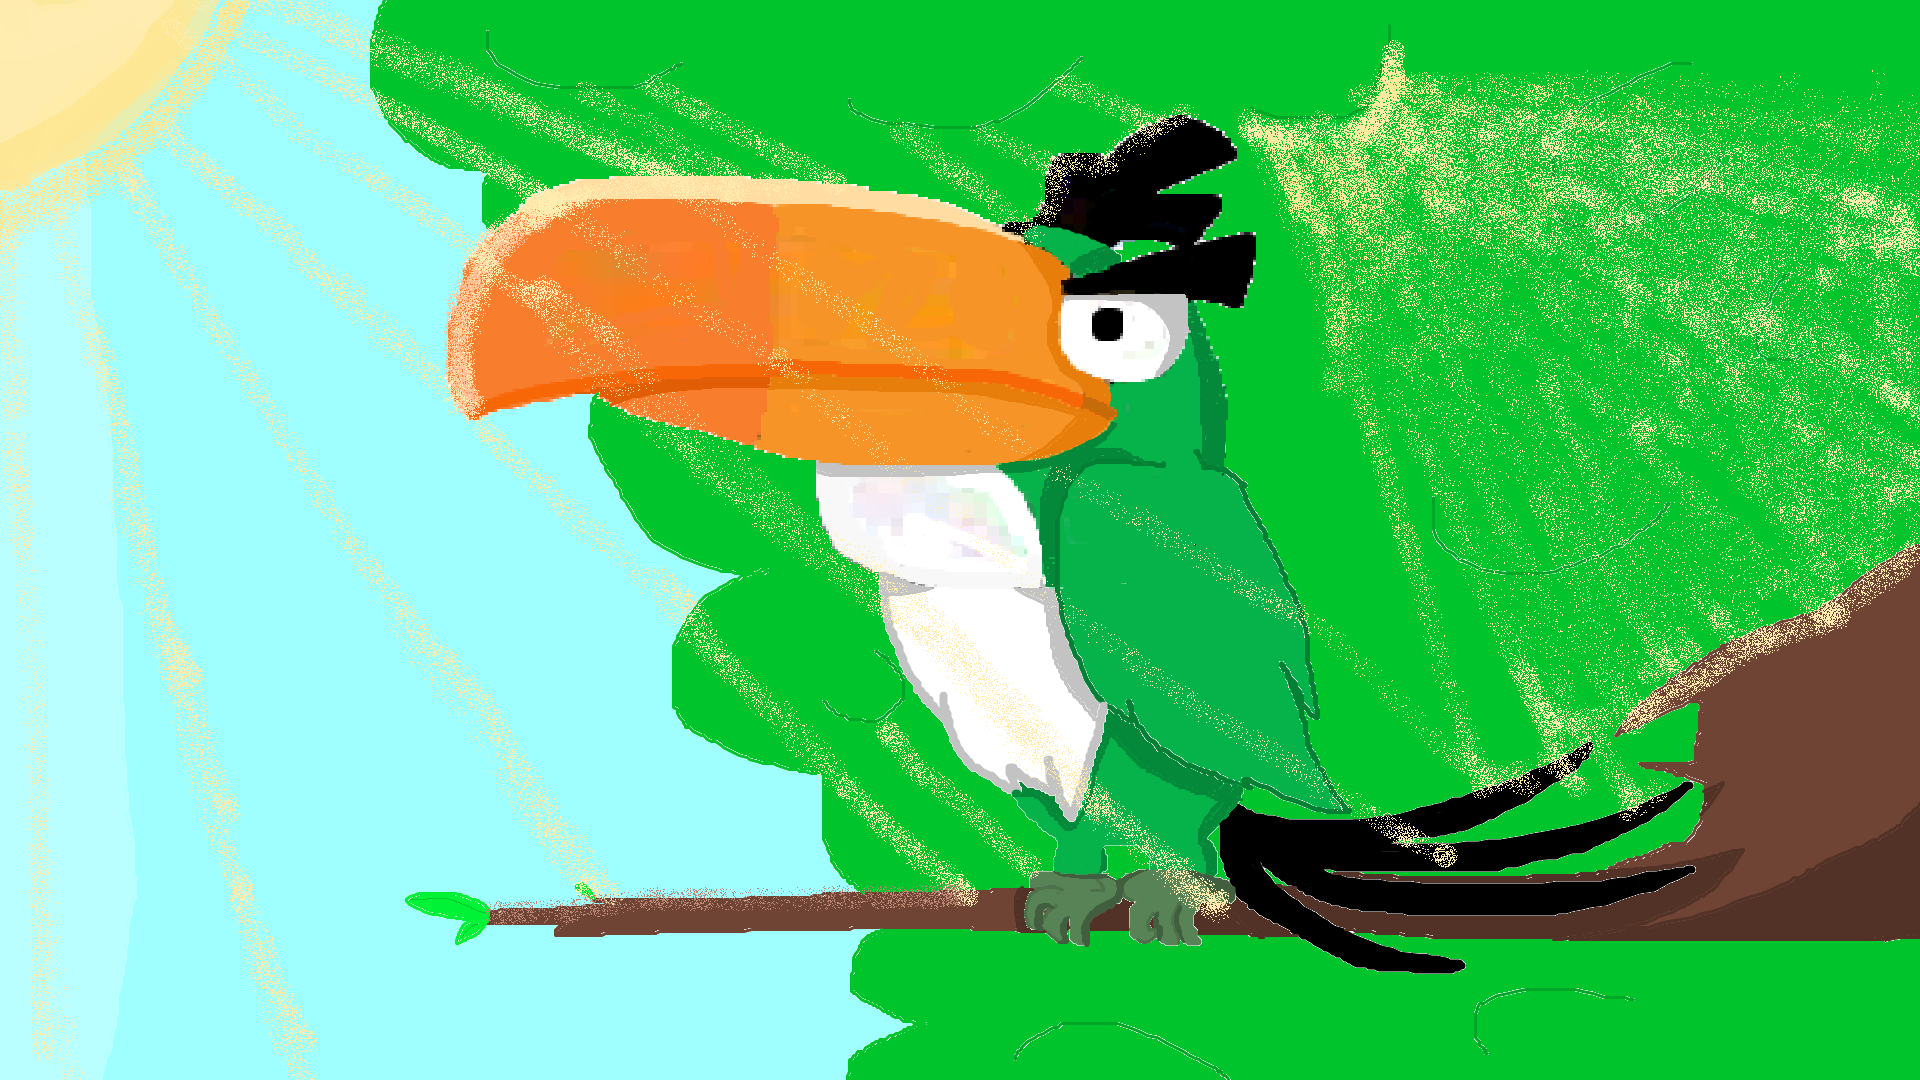 Emerald Toucanet clipart #1, Download drawings